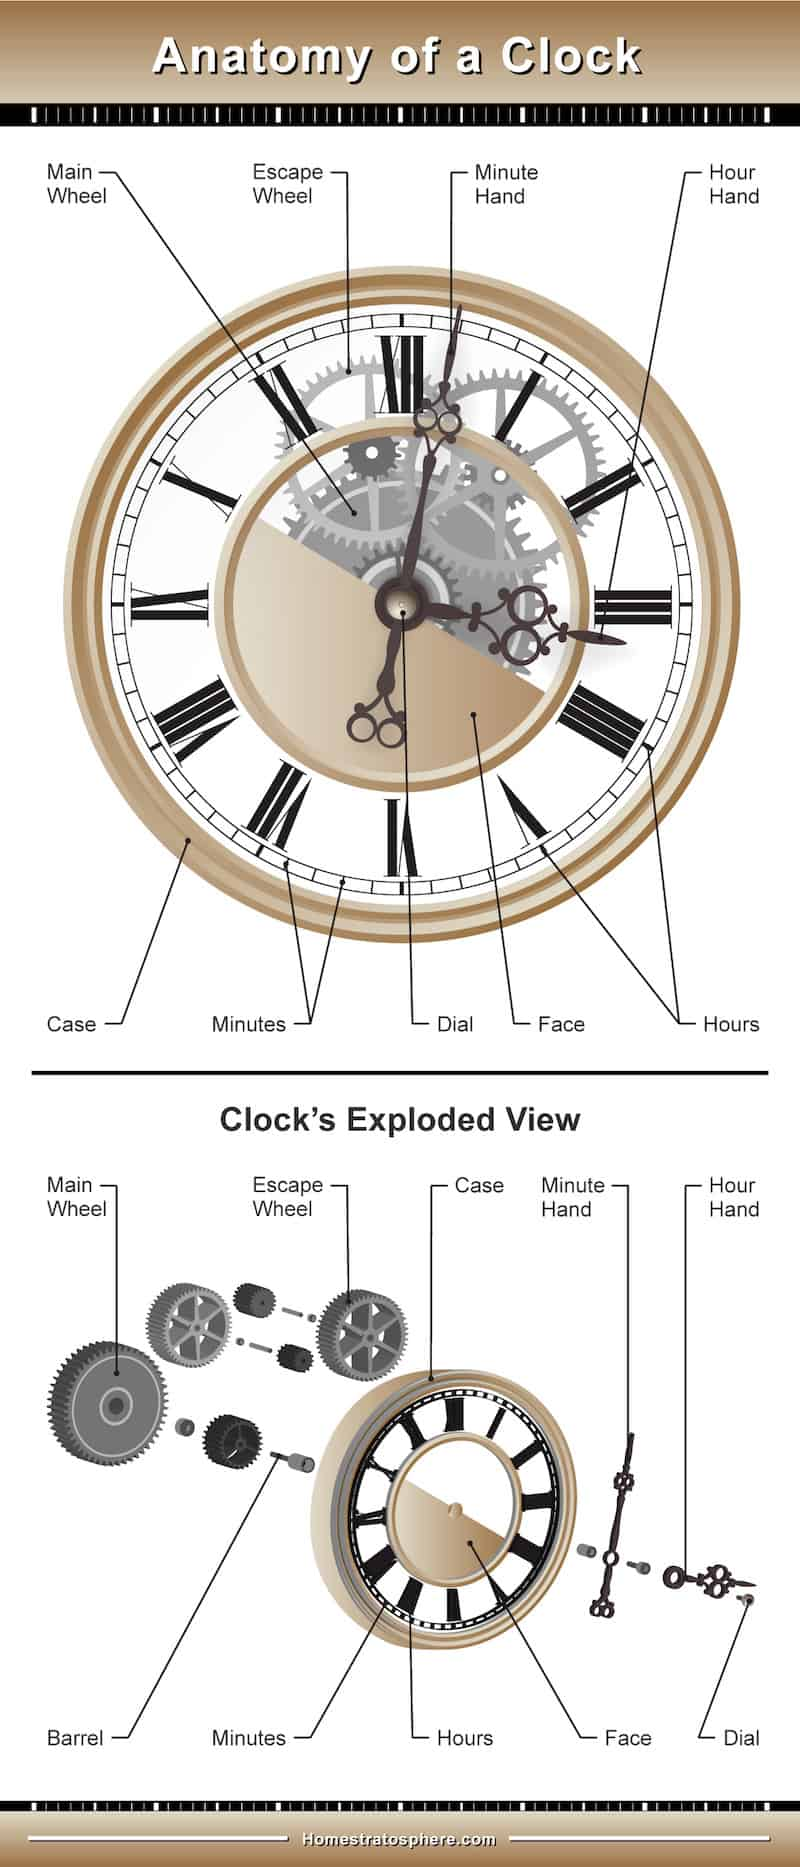 Diagram showing the anatomy of a wall clock